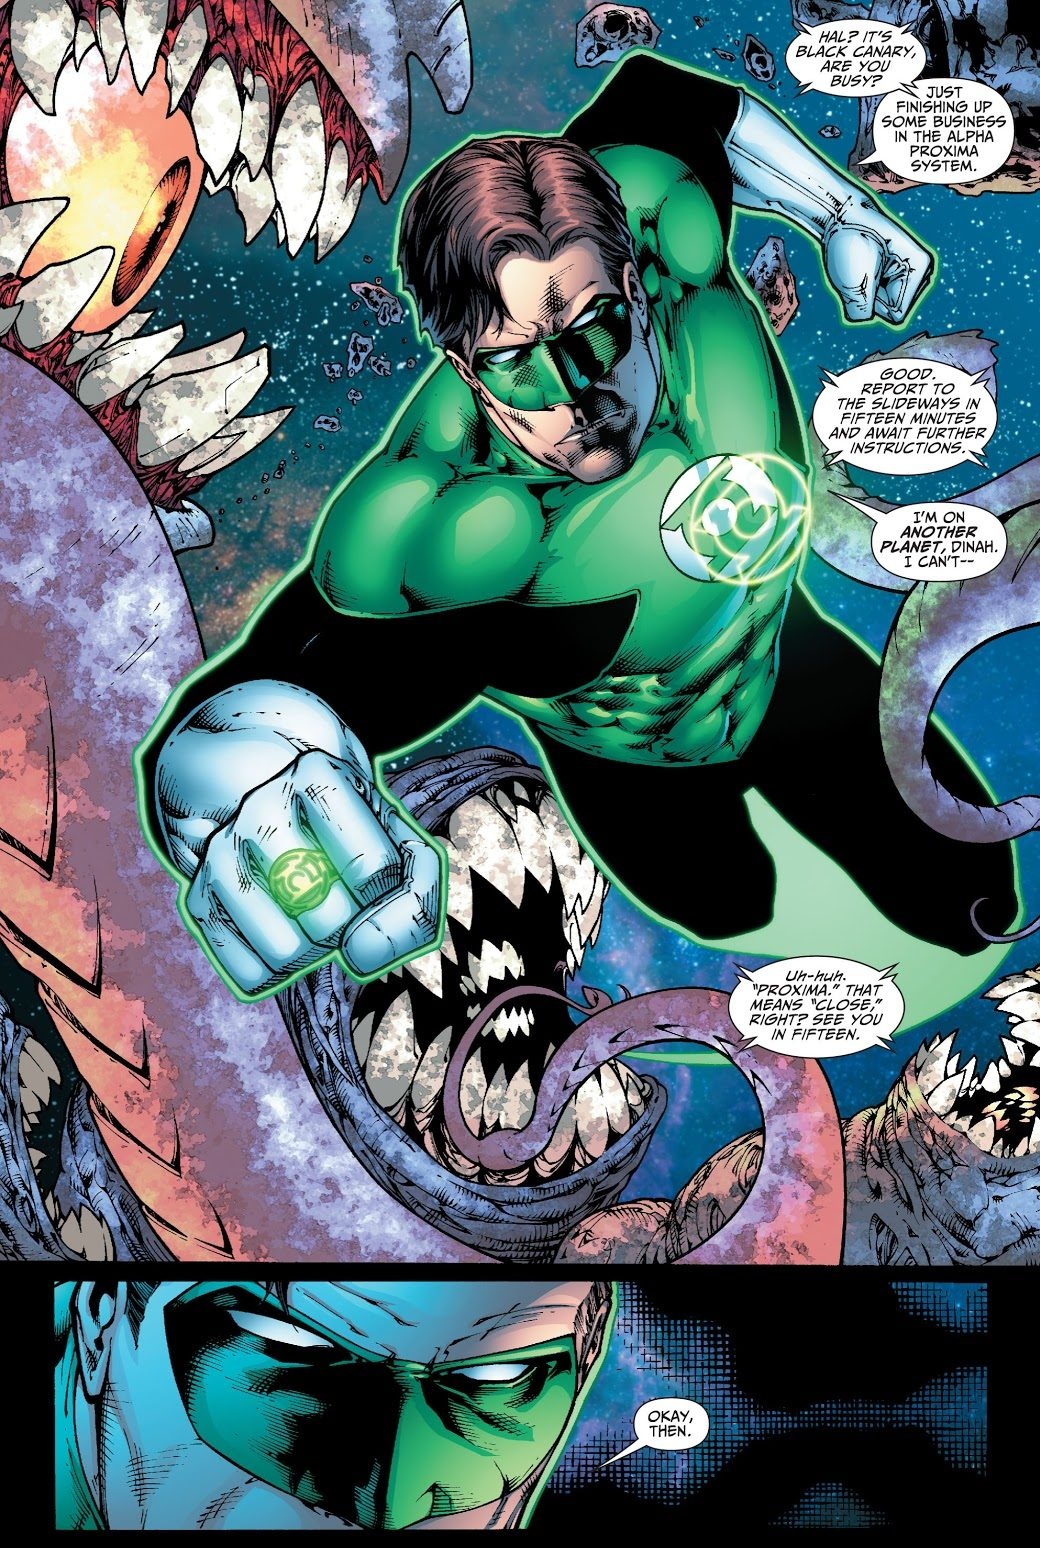 Green Lantern Hal Jordan (Justice League of America Vol. 2 #31)